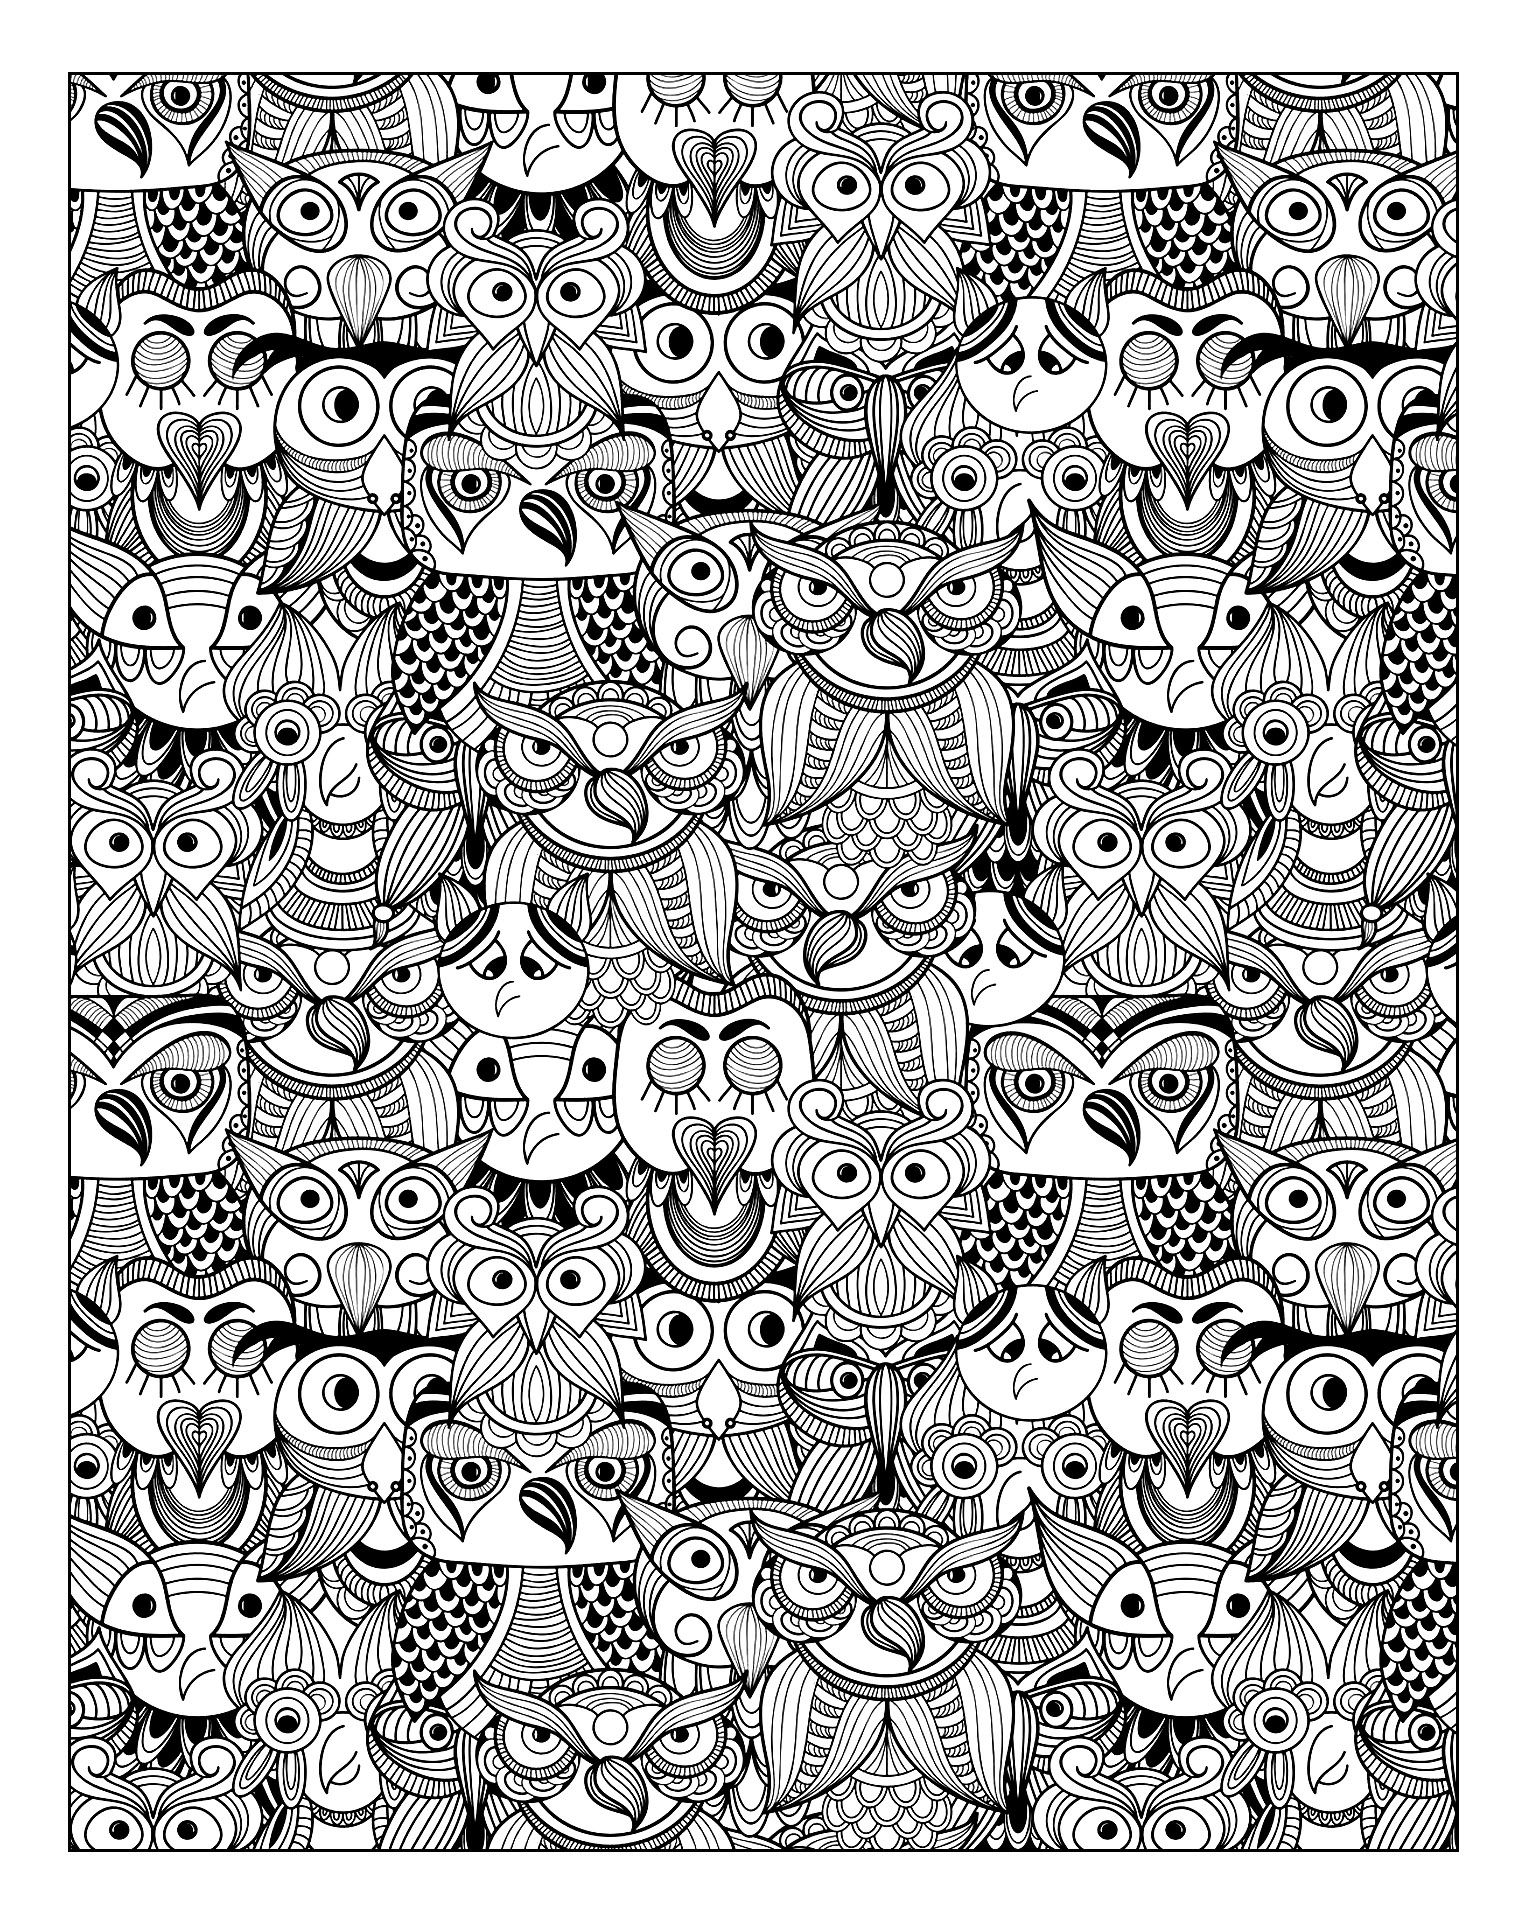 Free coloring pages for adults - Free Coloring Page Coloring Adult Owls